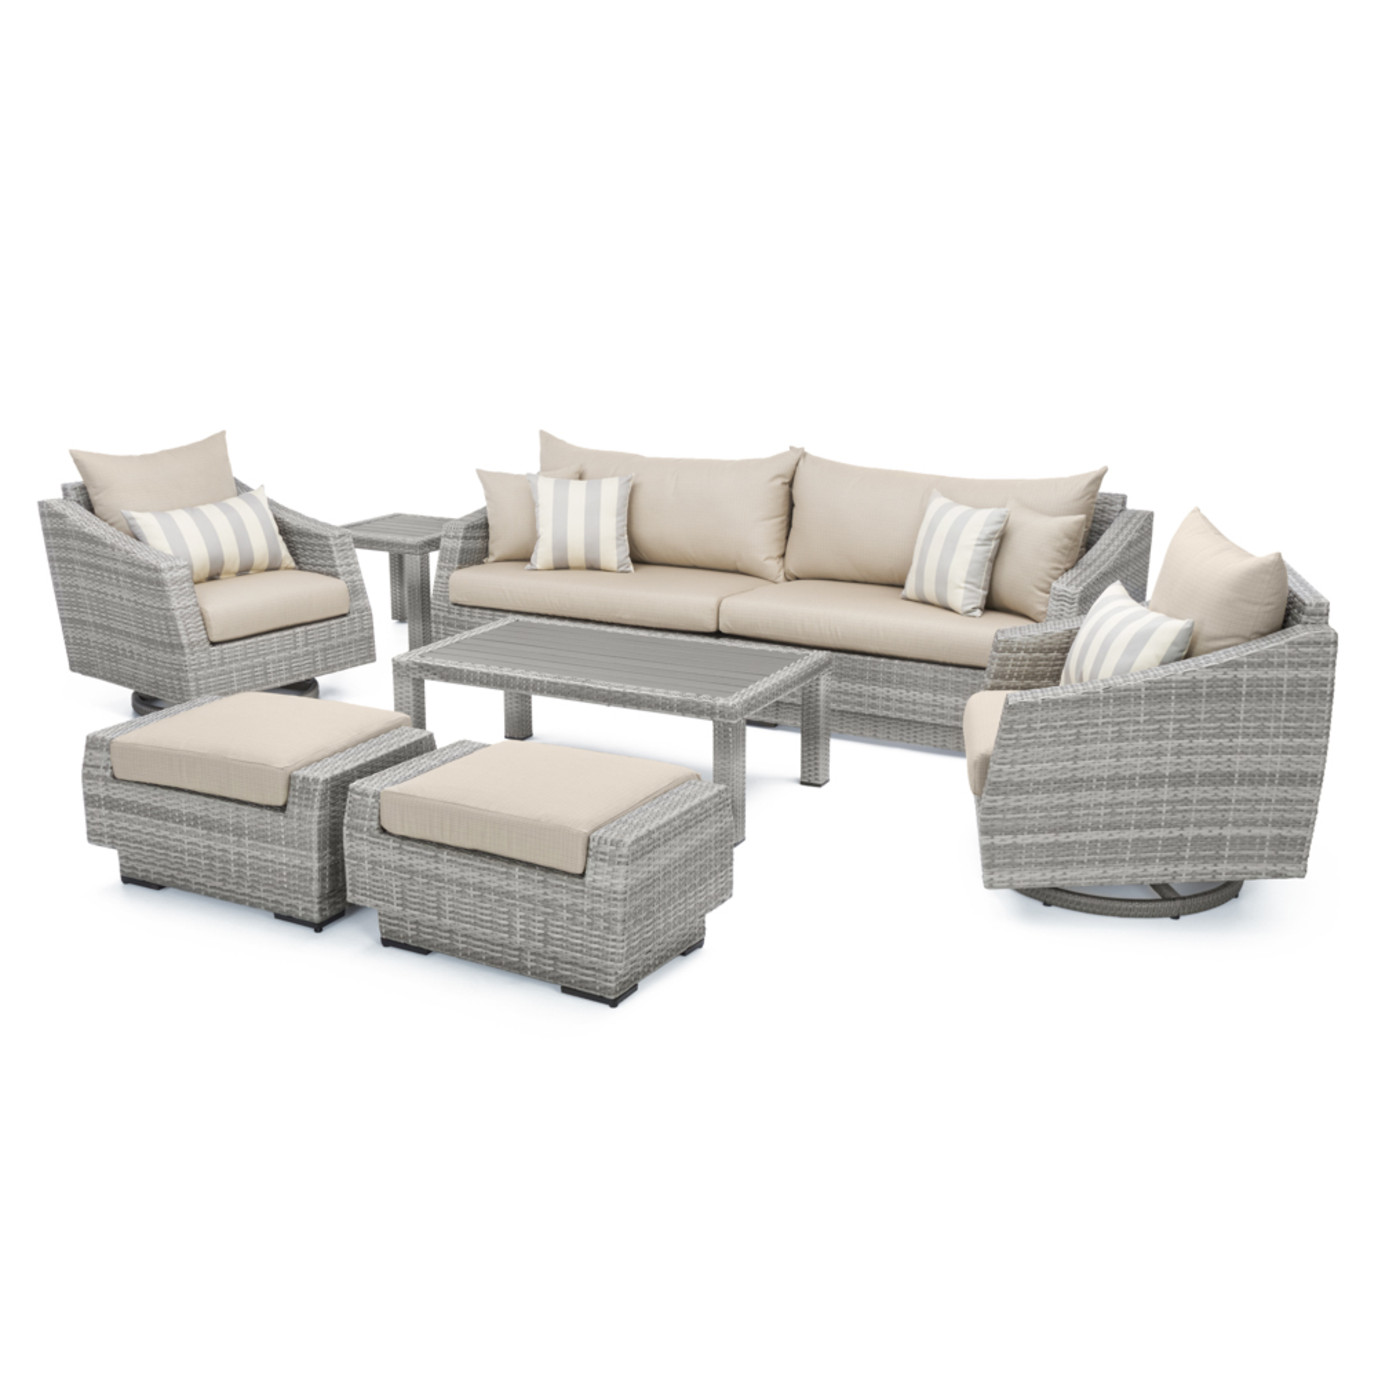 Cannes™ Deluxe 8pc Sofa & Club Chair Set - Slate Grey